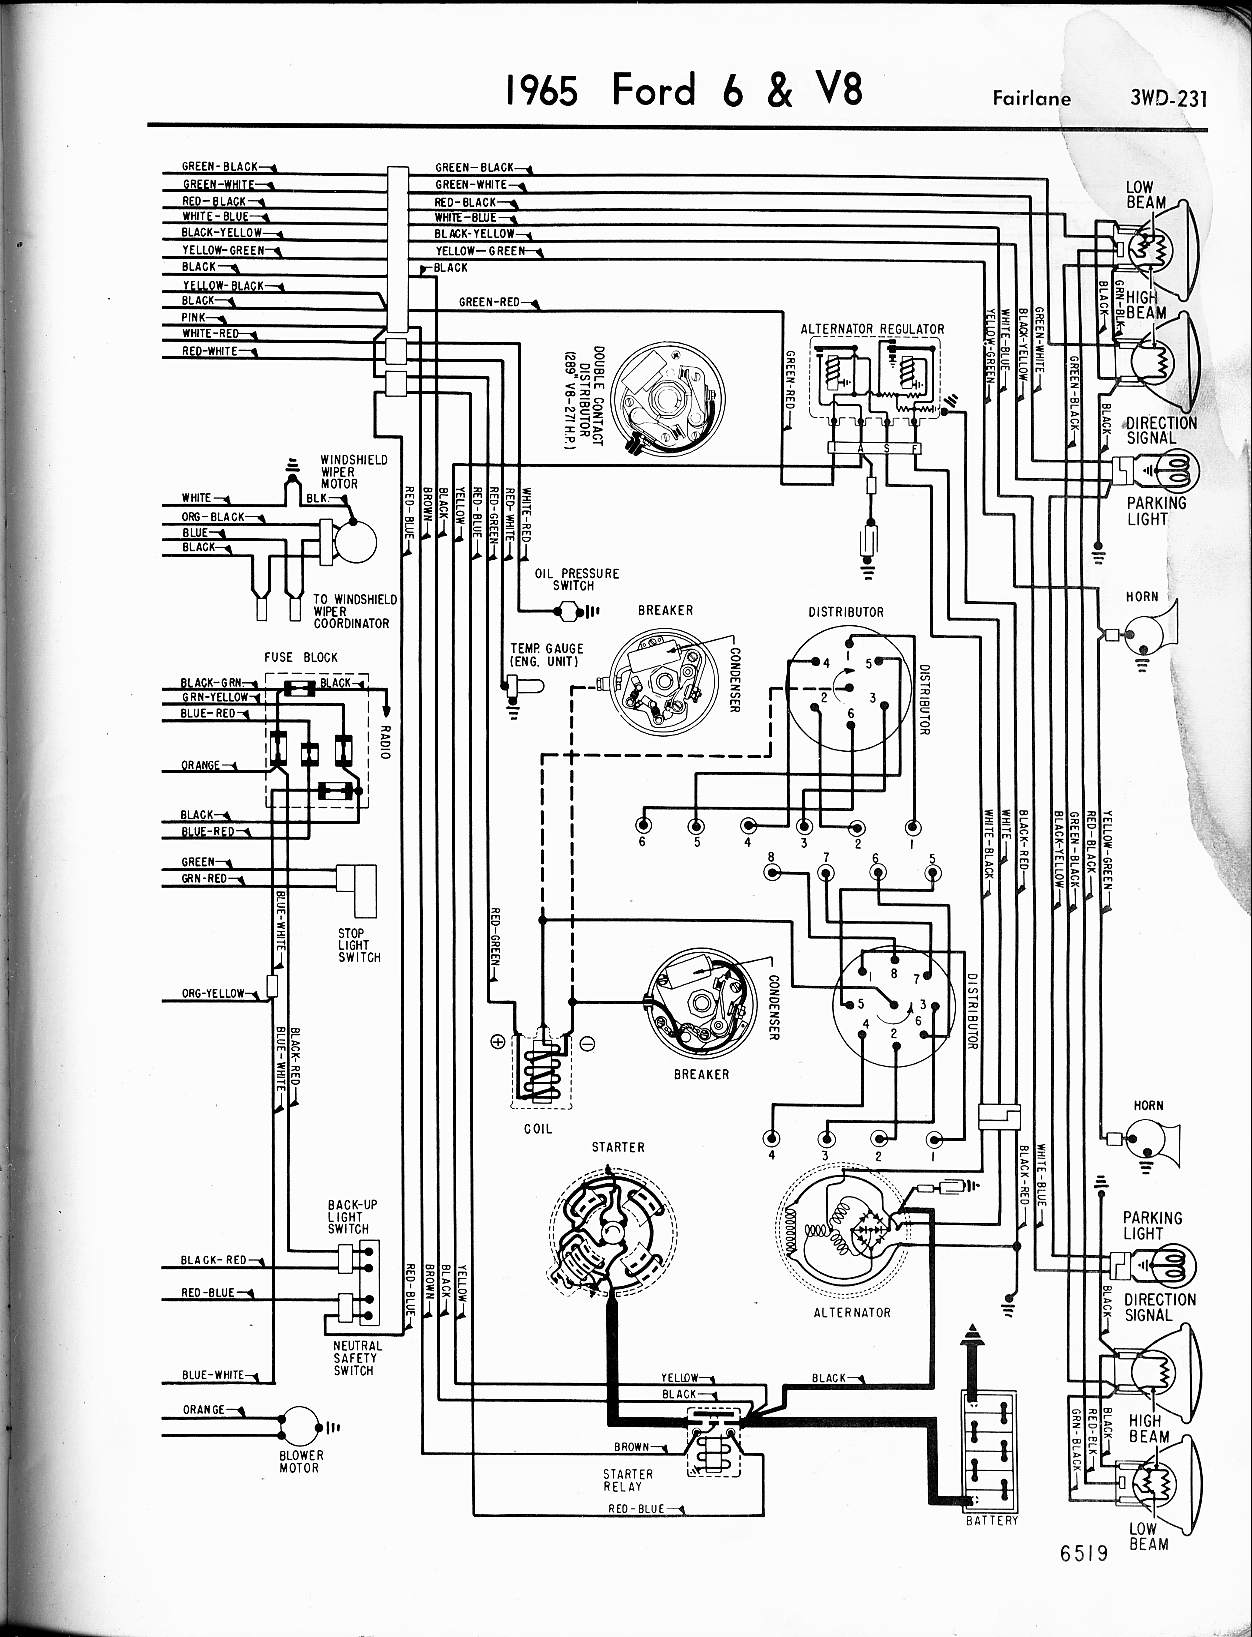 chevy ignition wiring diagram 57 65 ford wiring diagrams